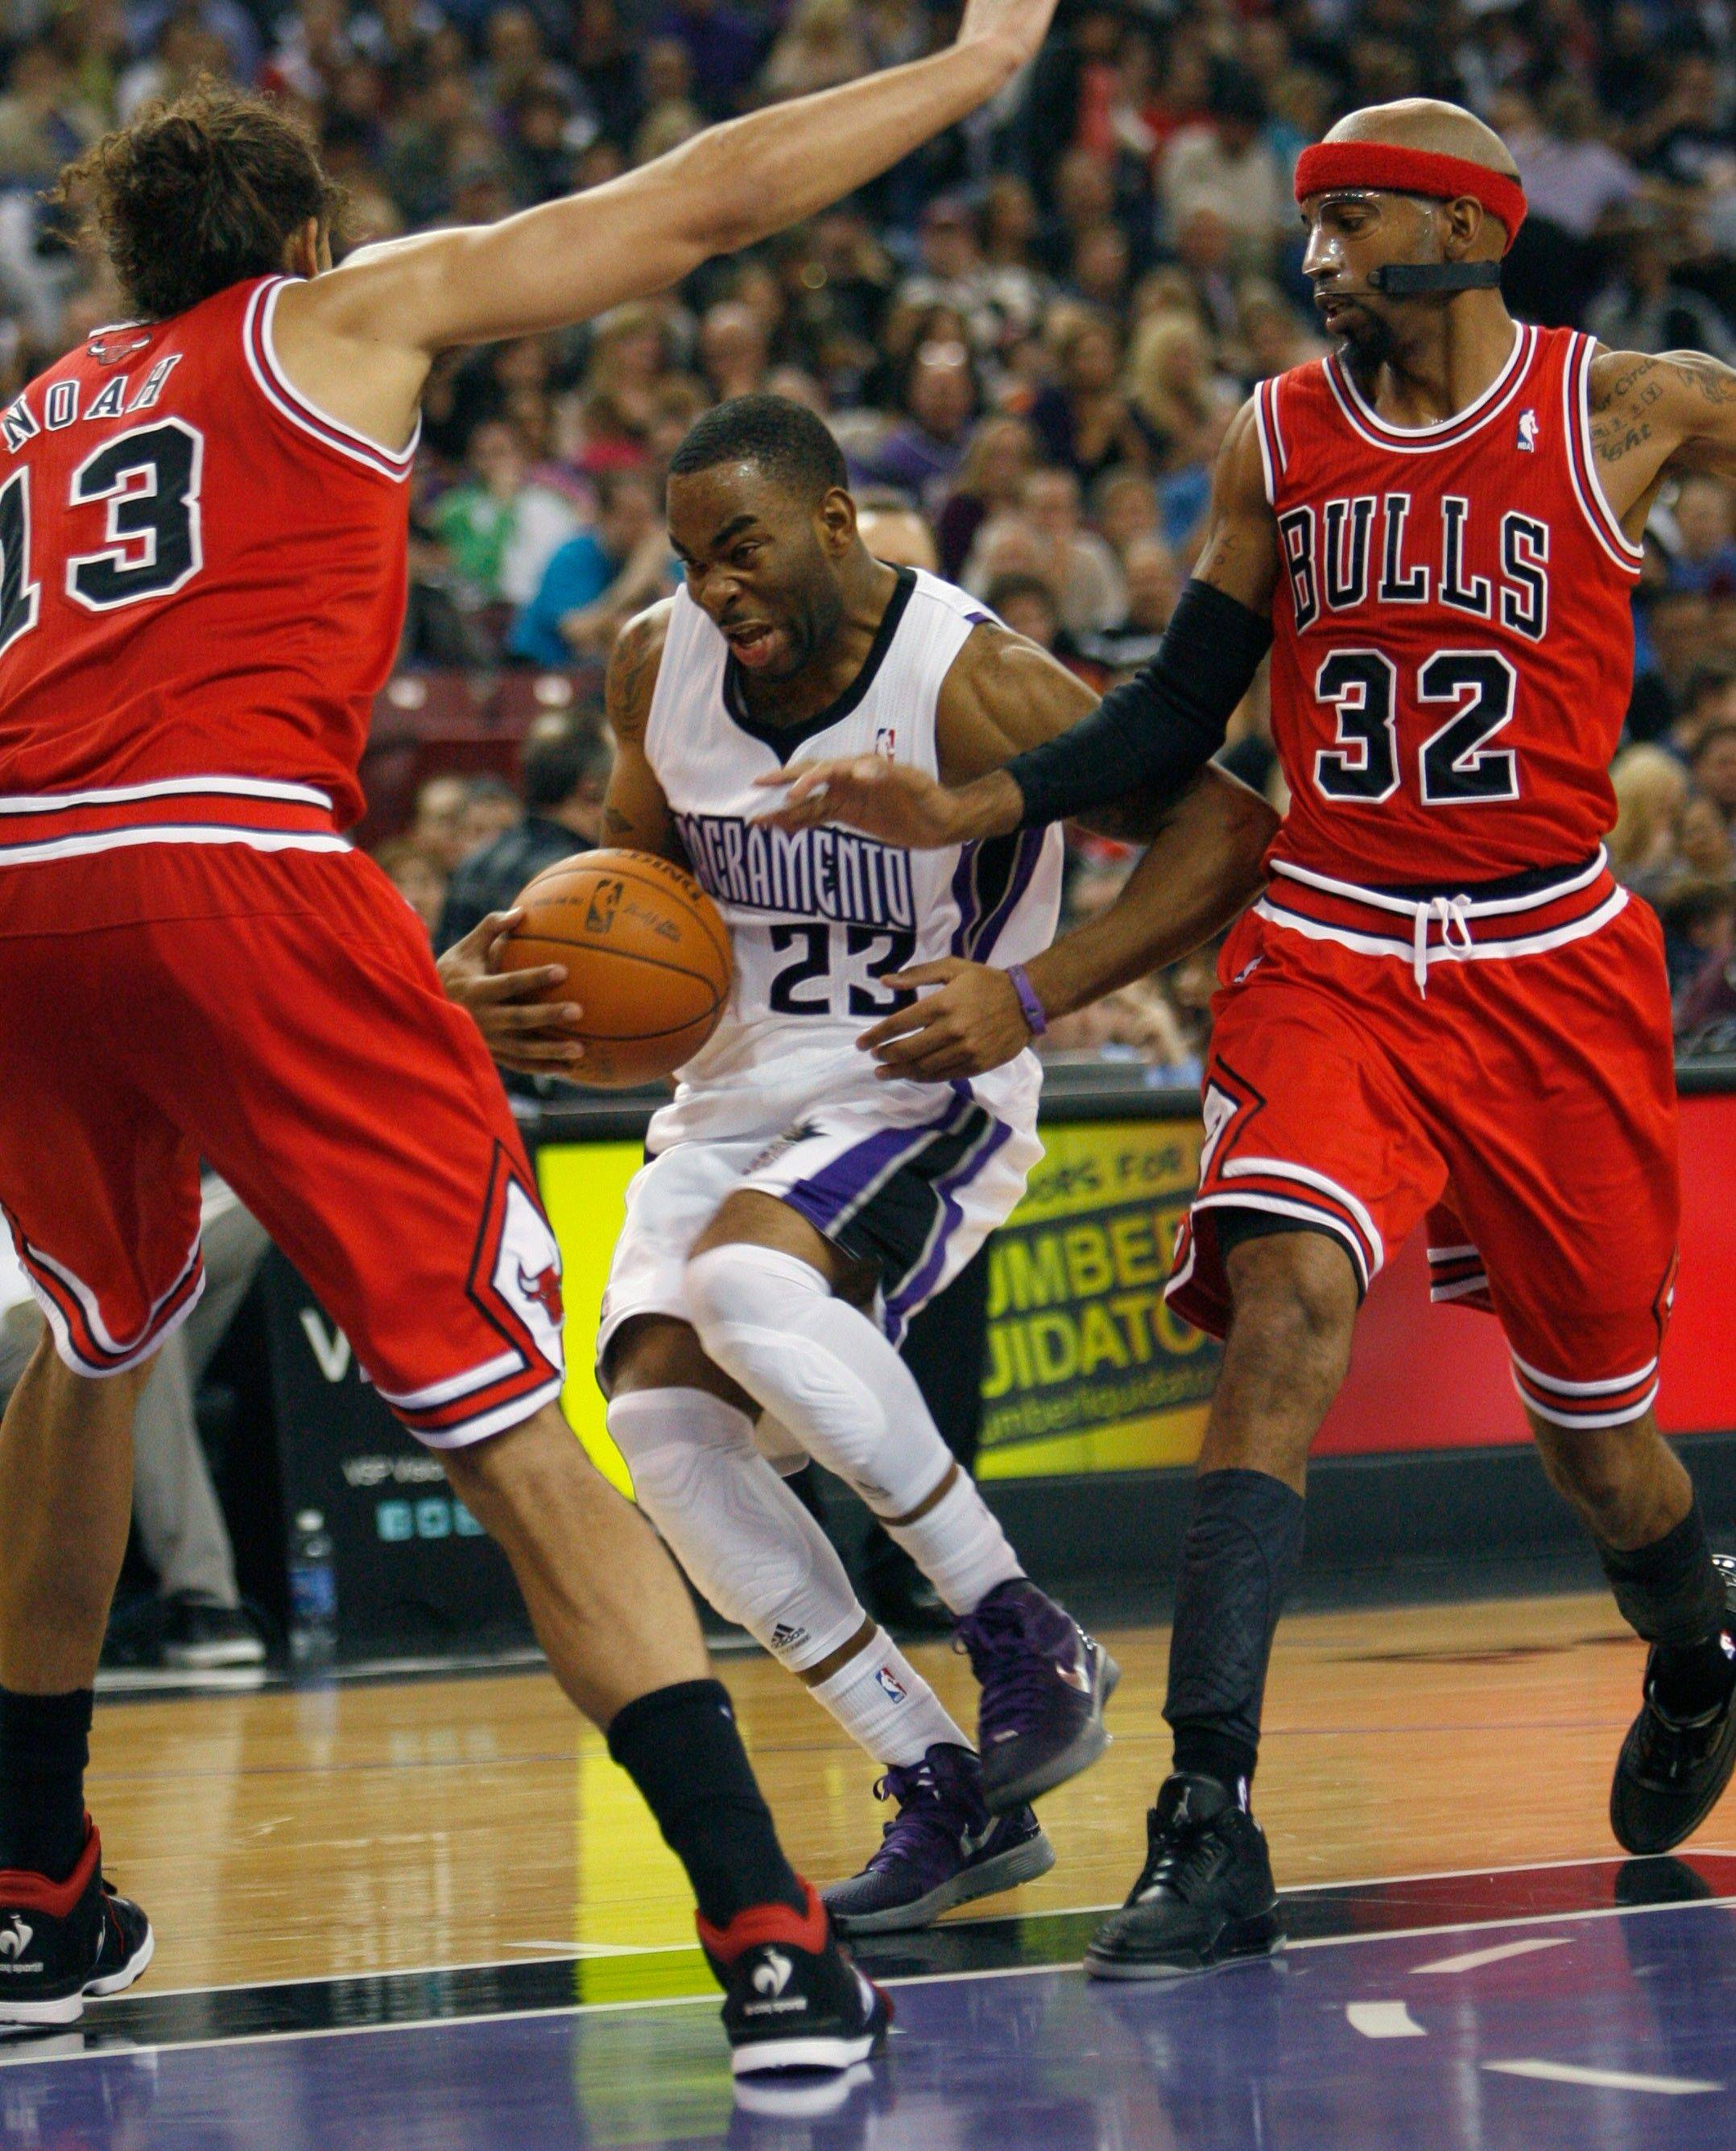 Kings guard Marcus Thornton gets trapped between Bulls defenders Joakim Noah (13) and Richard Hamilton (32) during the second half Thursday night in Sacramento. The Bulls won 108-98.